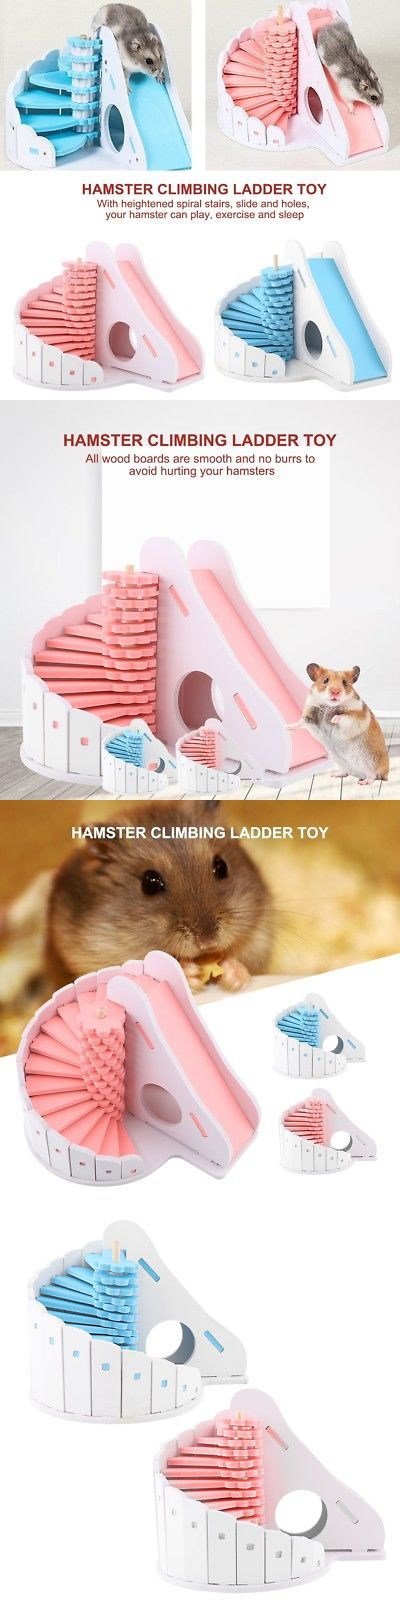 Exercise And Toys 63113 Pet Rat Hamster Wooden Climbing Ladder With Slide House Cage Nest Playing Toy Buy It Now Only Exercise And Toys 63113 Pet M